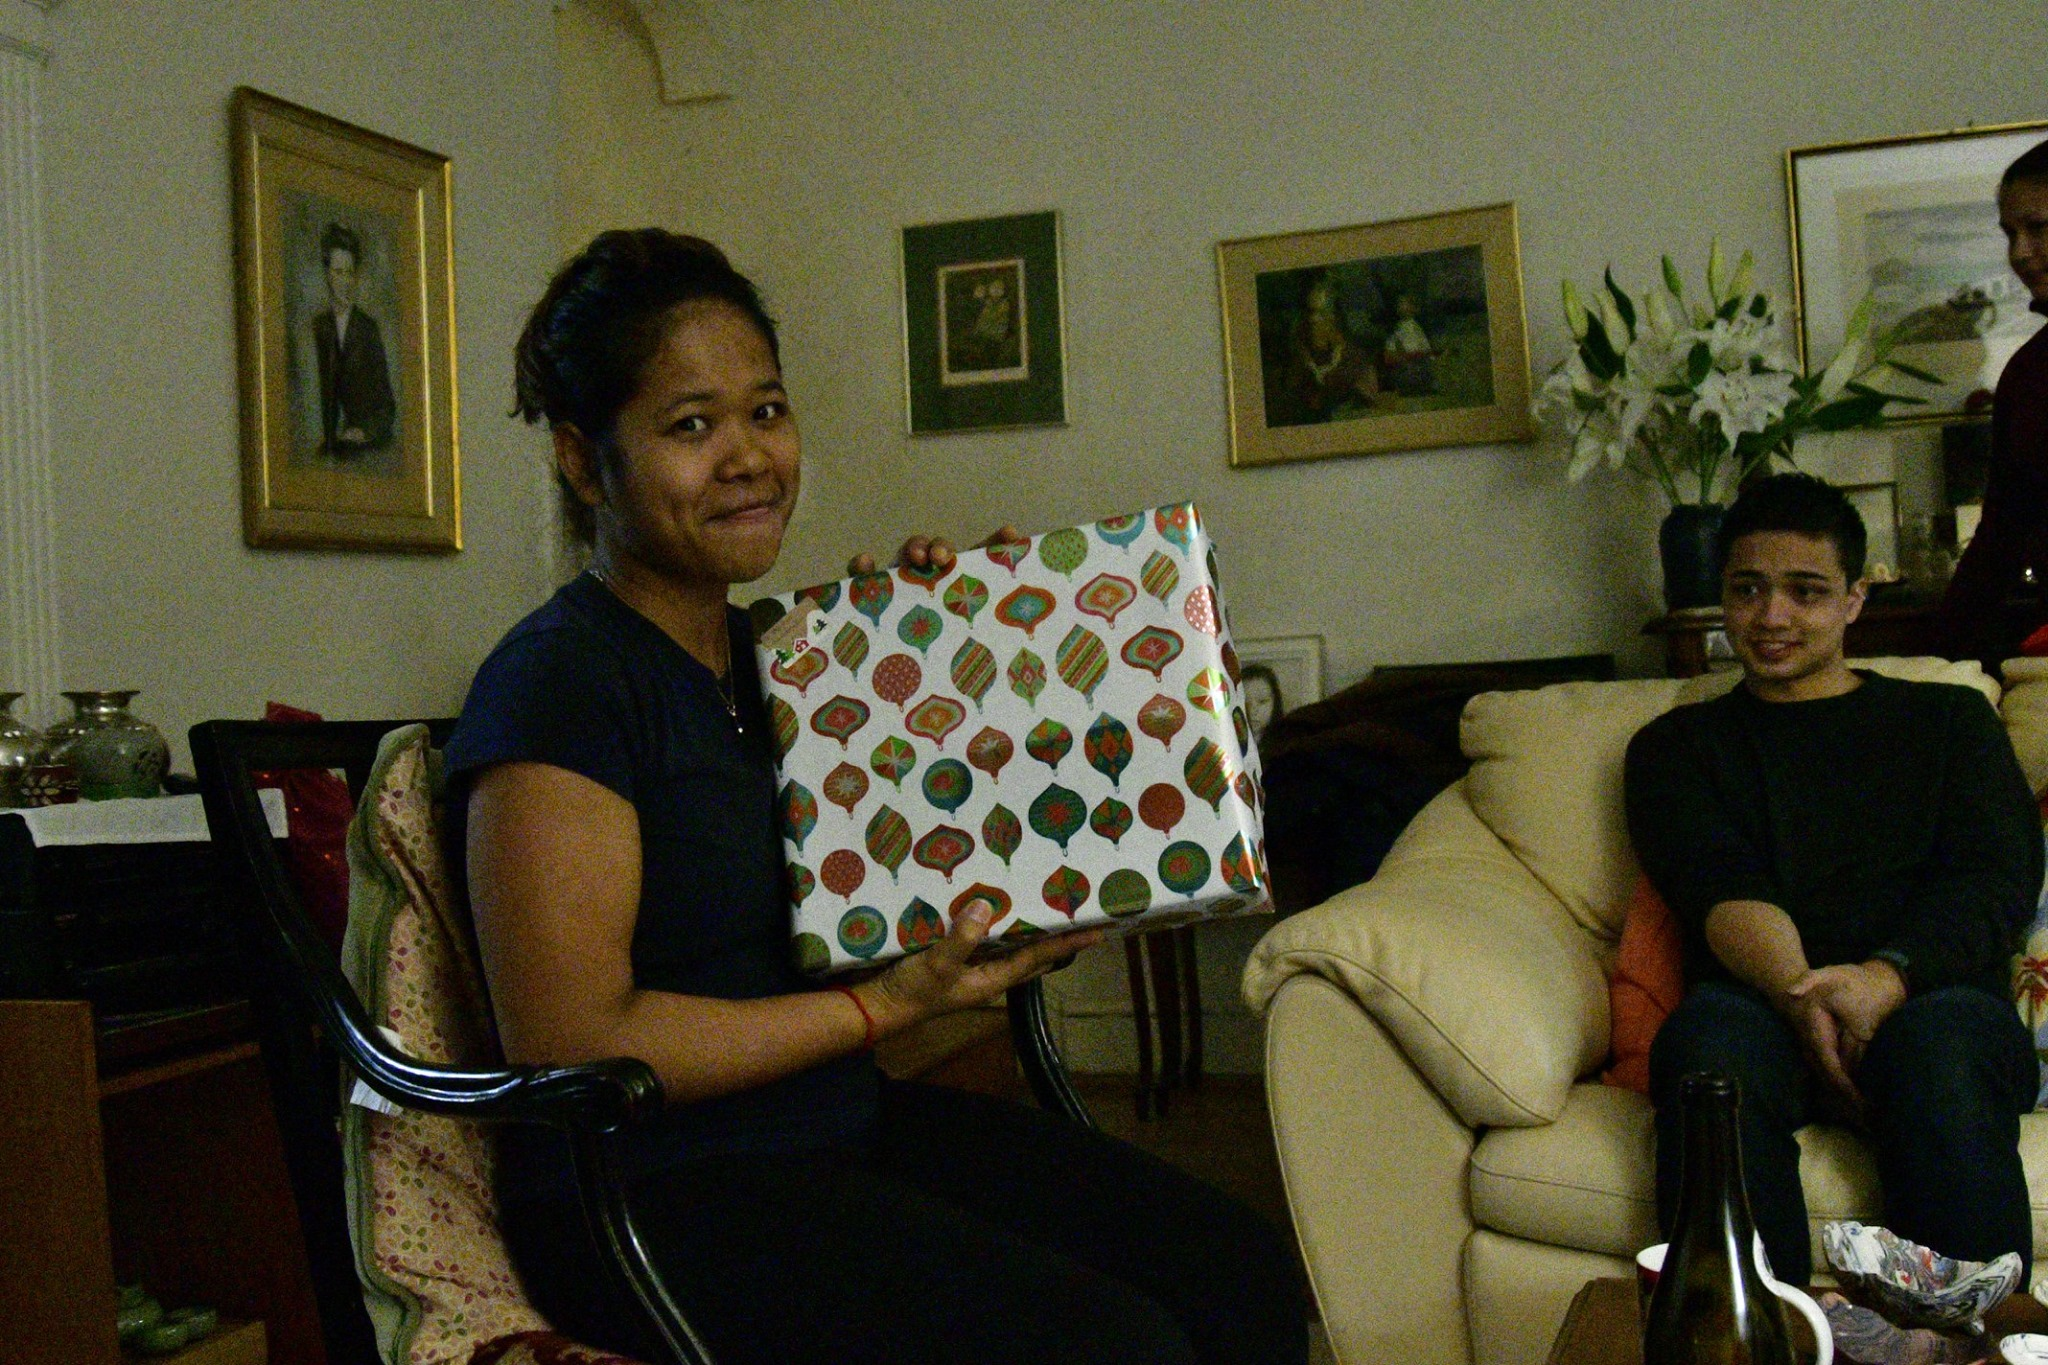 I am looking happy to open my X'mas gift from Nathalie while Phillipe is looking at me in a funny way